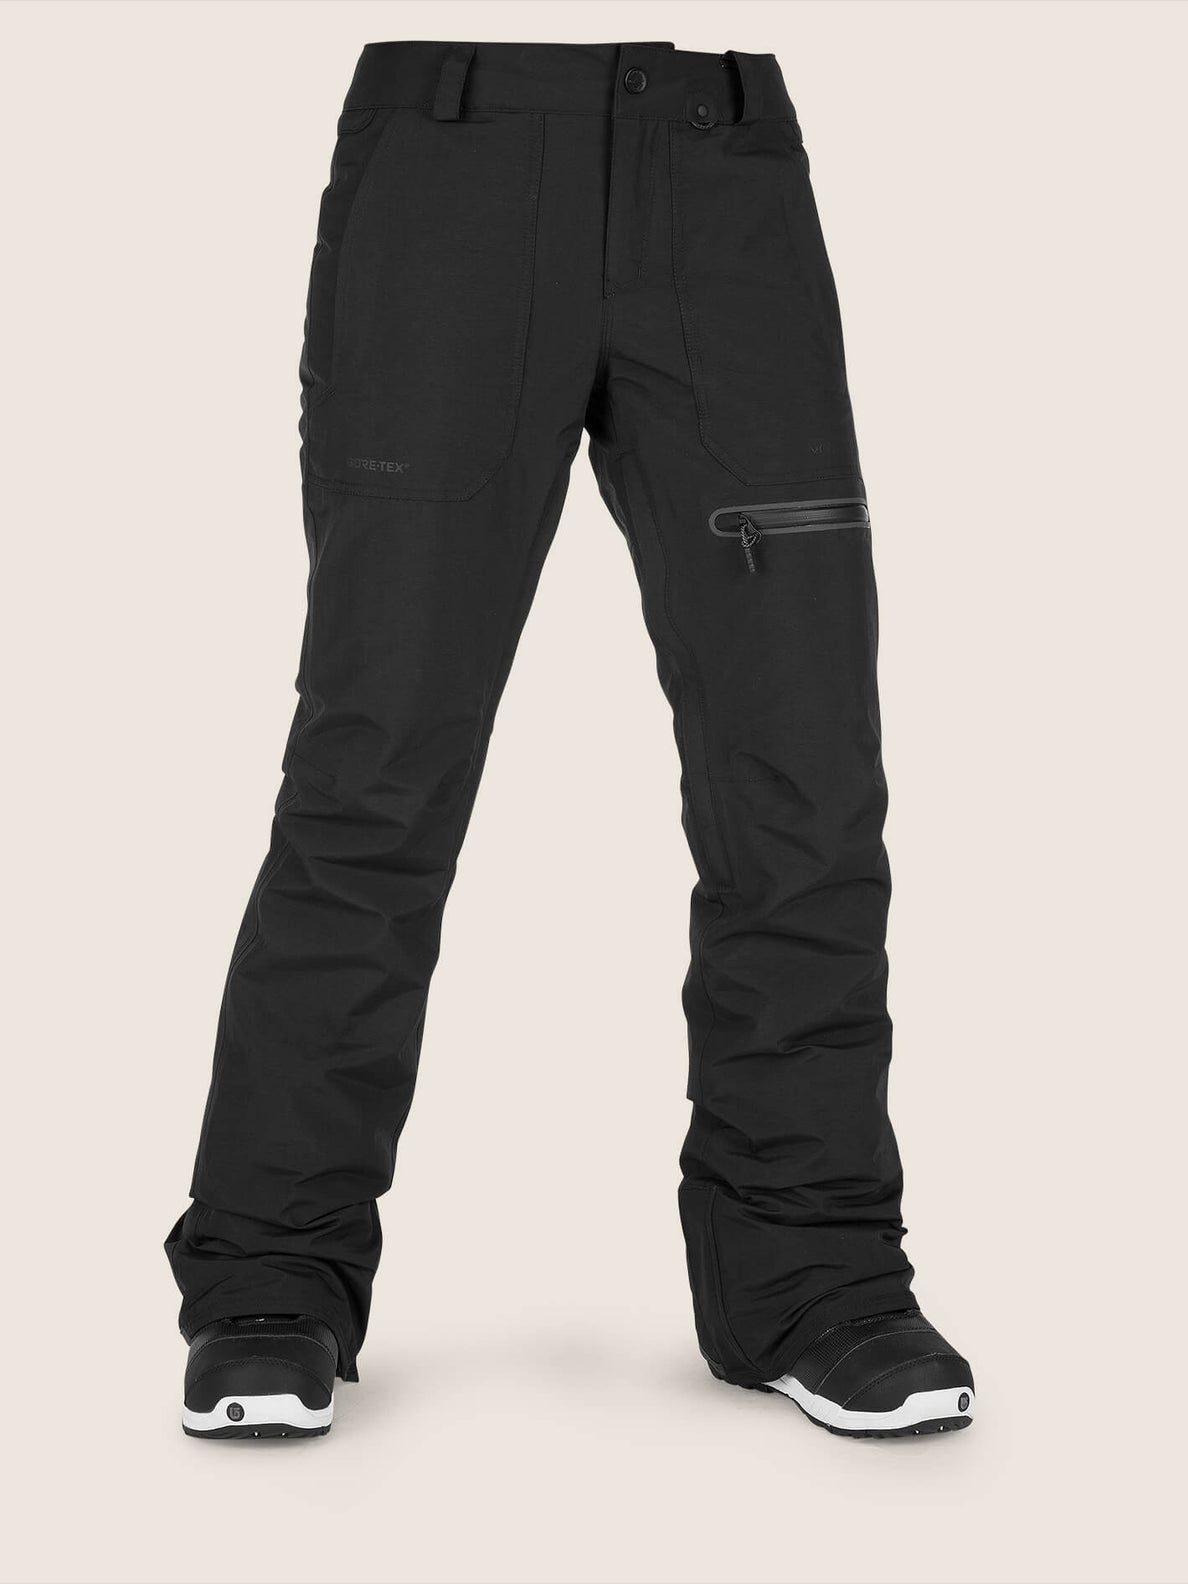 Knox Insulated Gore-tex Pant In Black, Front View